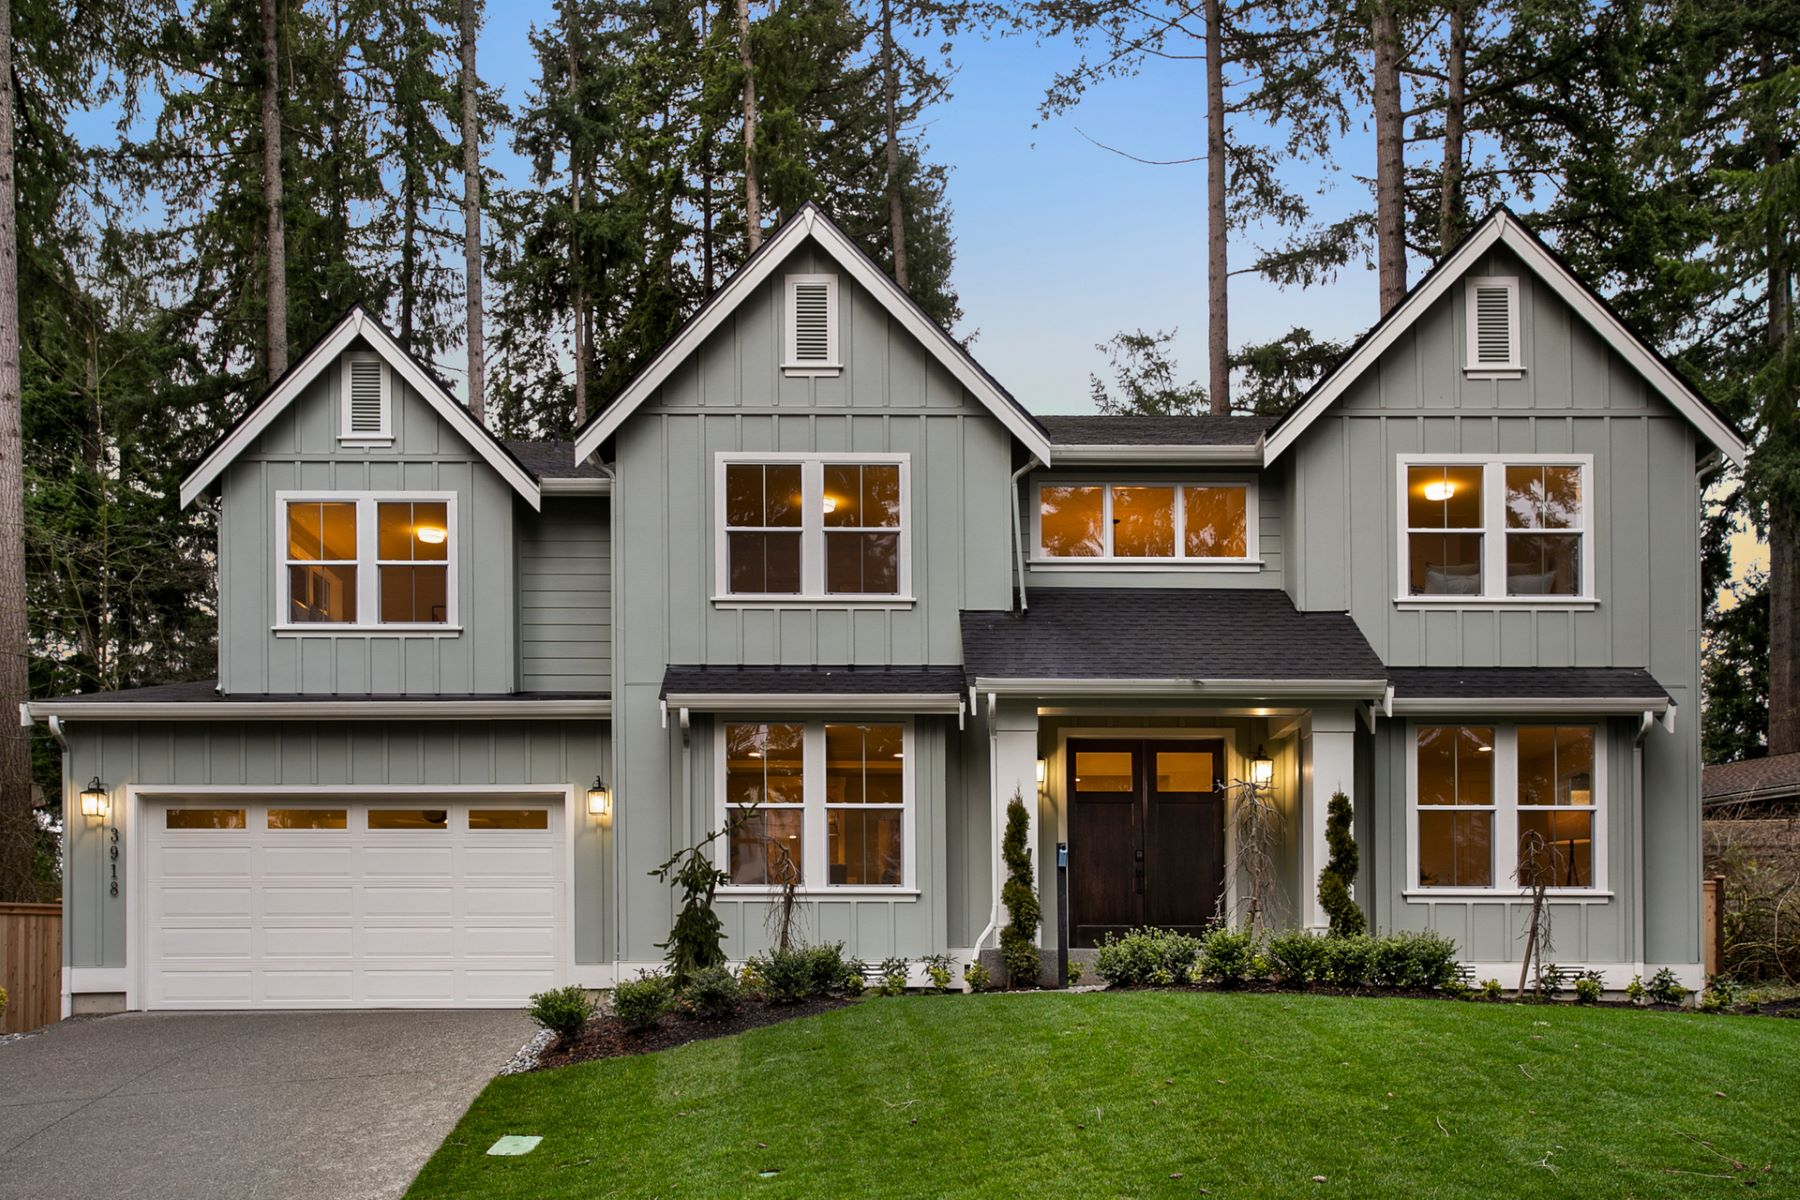 Single Family Homes for Sale at 3918 151st Ave SE, Bellevue, WA 98006 3918 151st Ave SE Bellevue, Washington 98006 United States